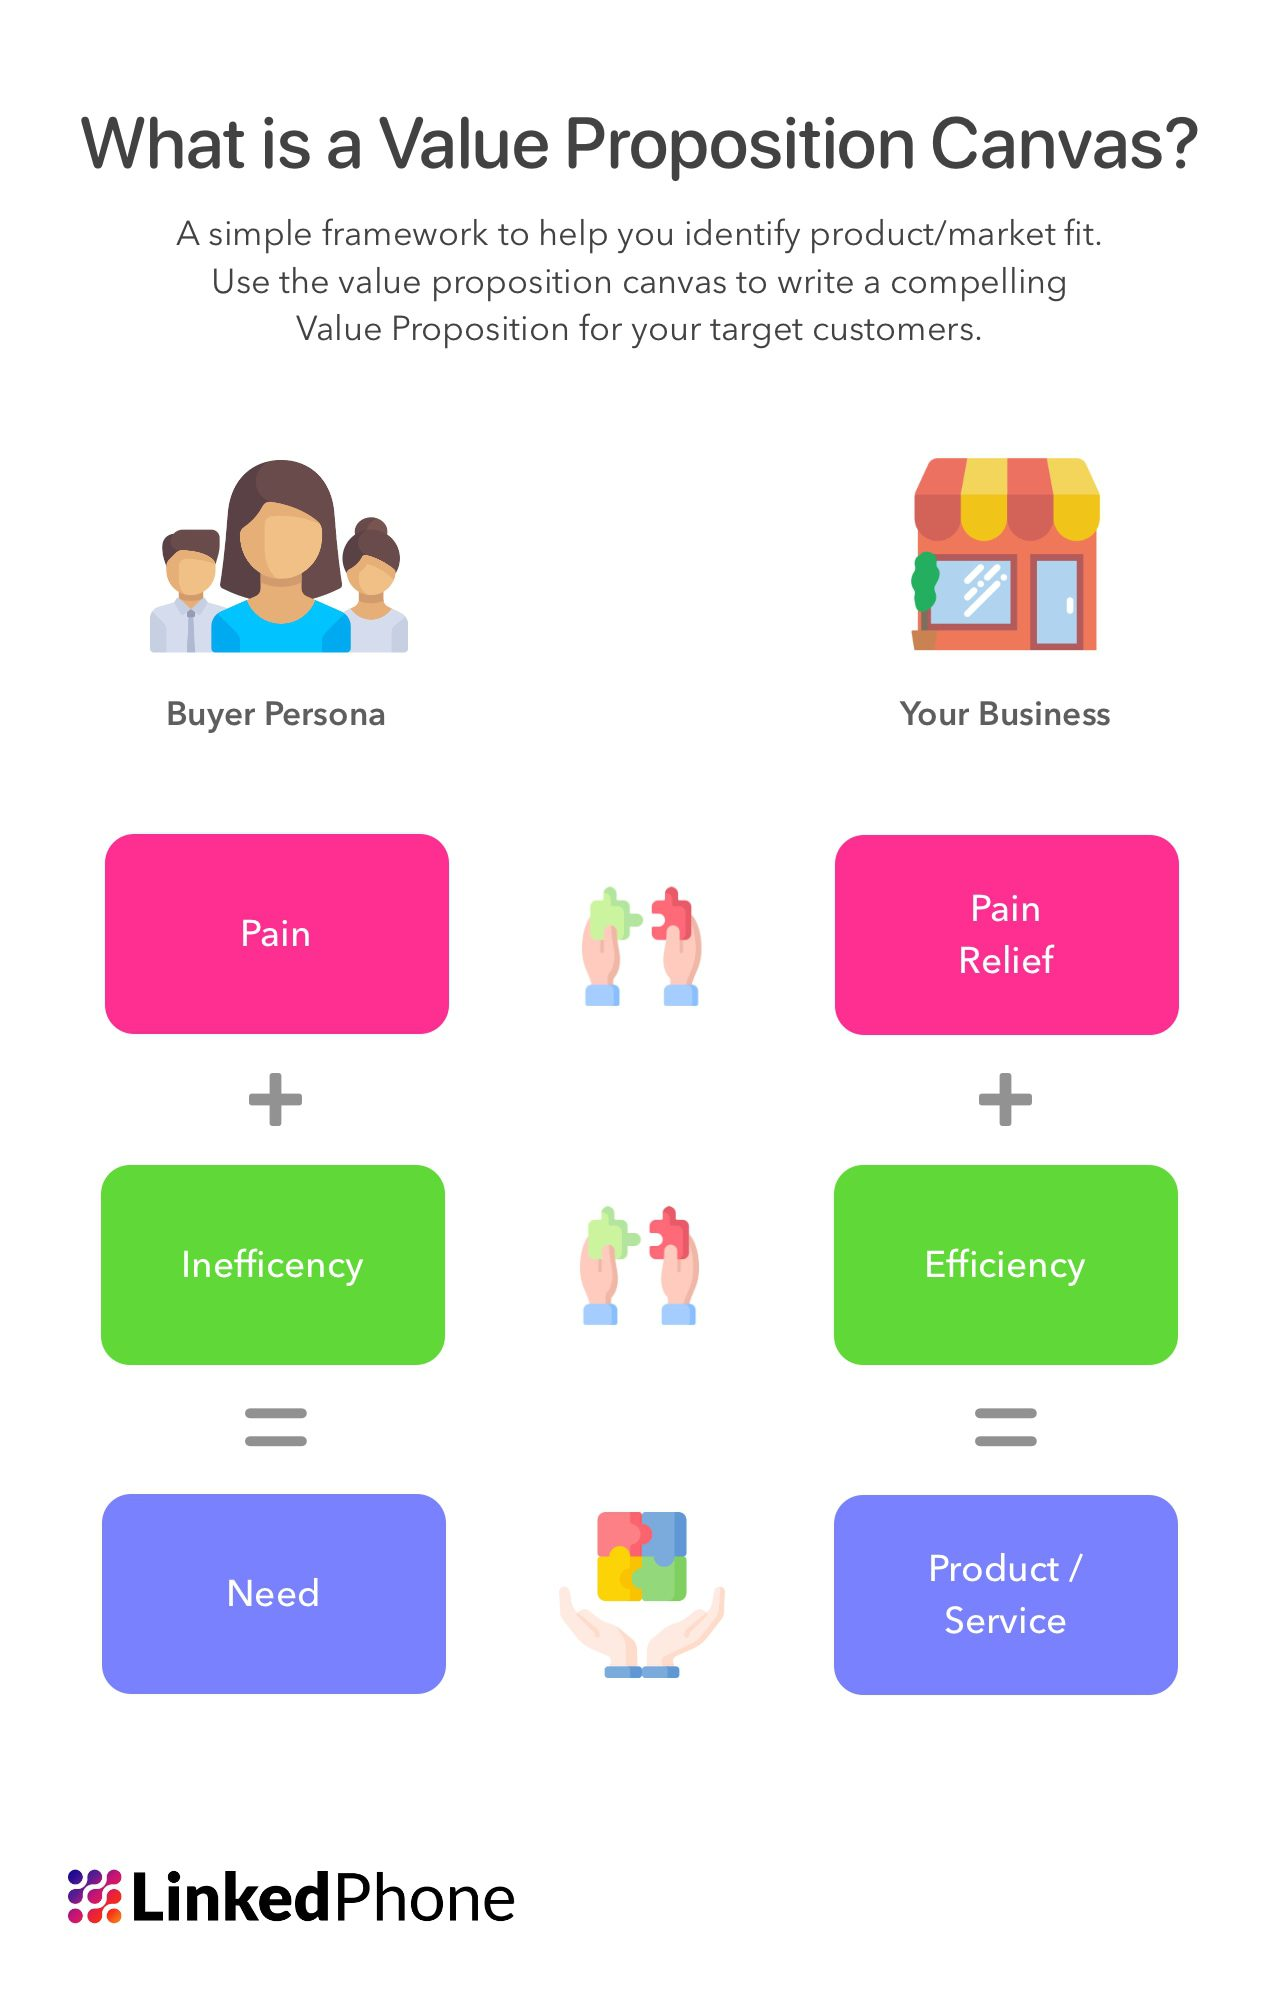 What is a Value Proposition Canvas